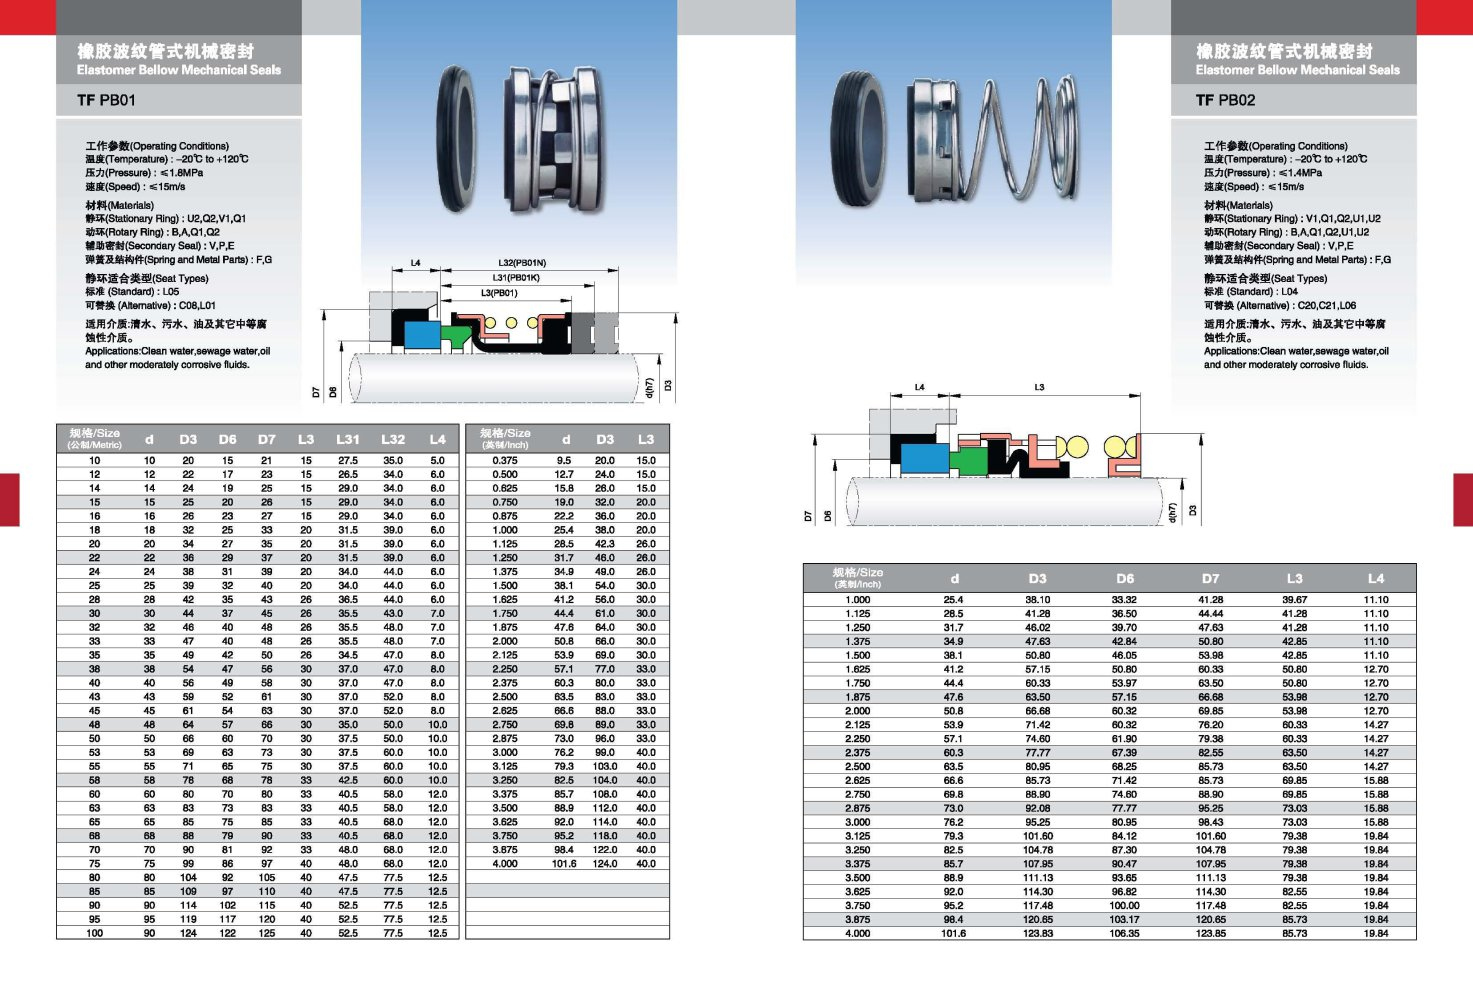 Chinabase elastomer bellow mechanical seal chinabase machinery chinabase elastomer bellow mechanical seal 1 13 pages geenschuldenfo Gallery